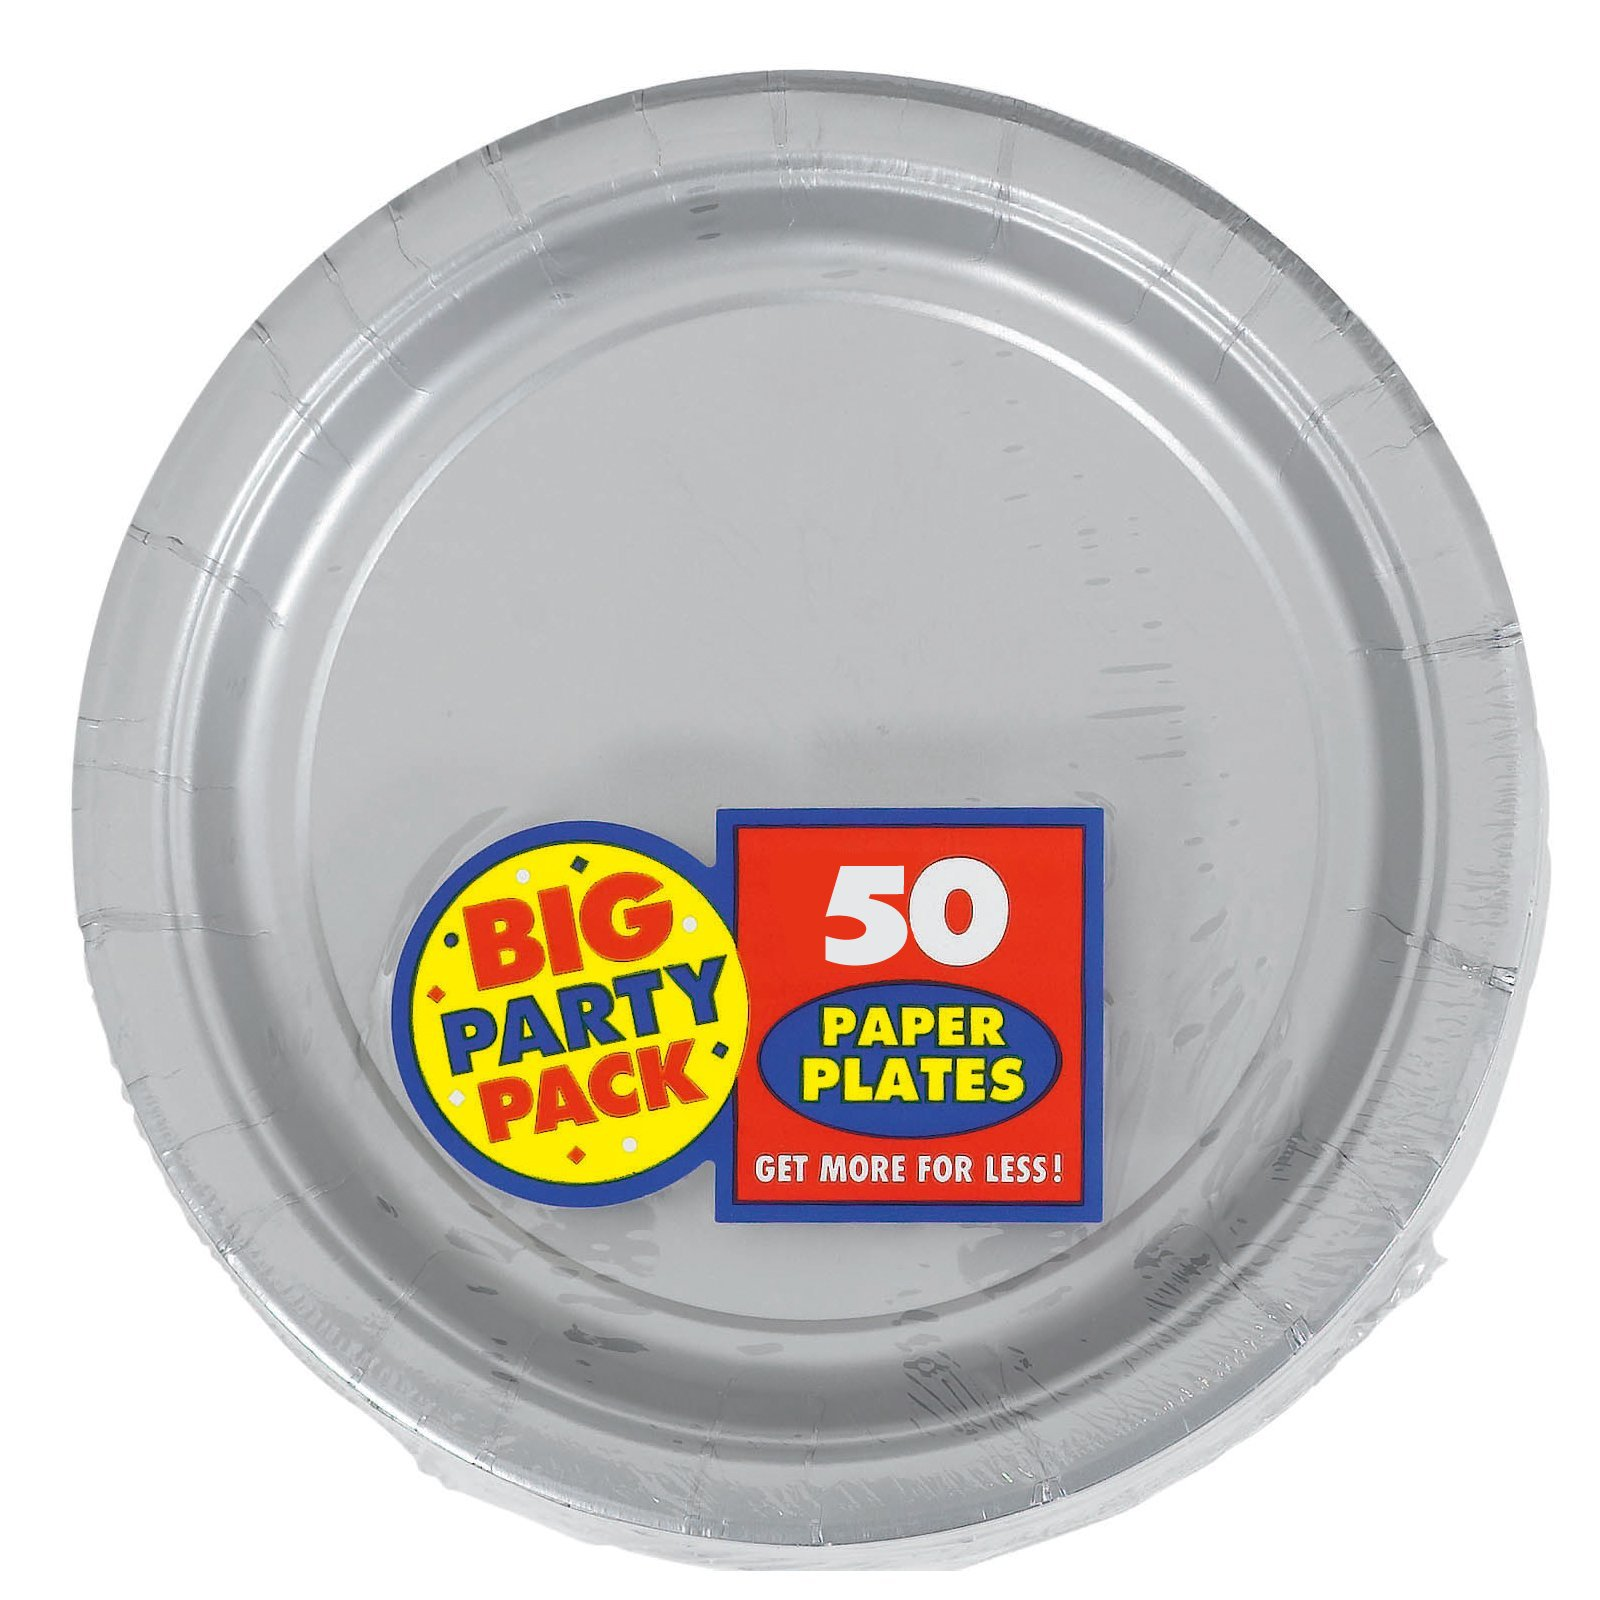 Silver Big Party Pack - Dinner Plates (50 count)